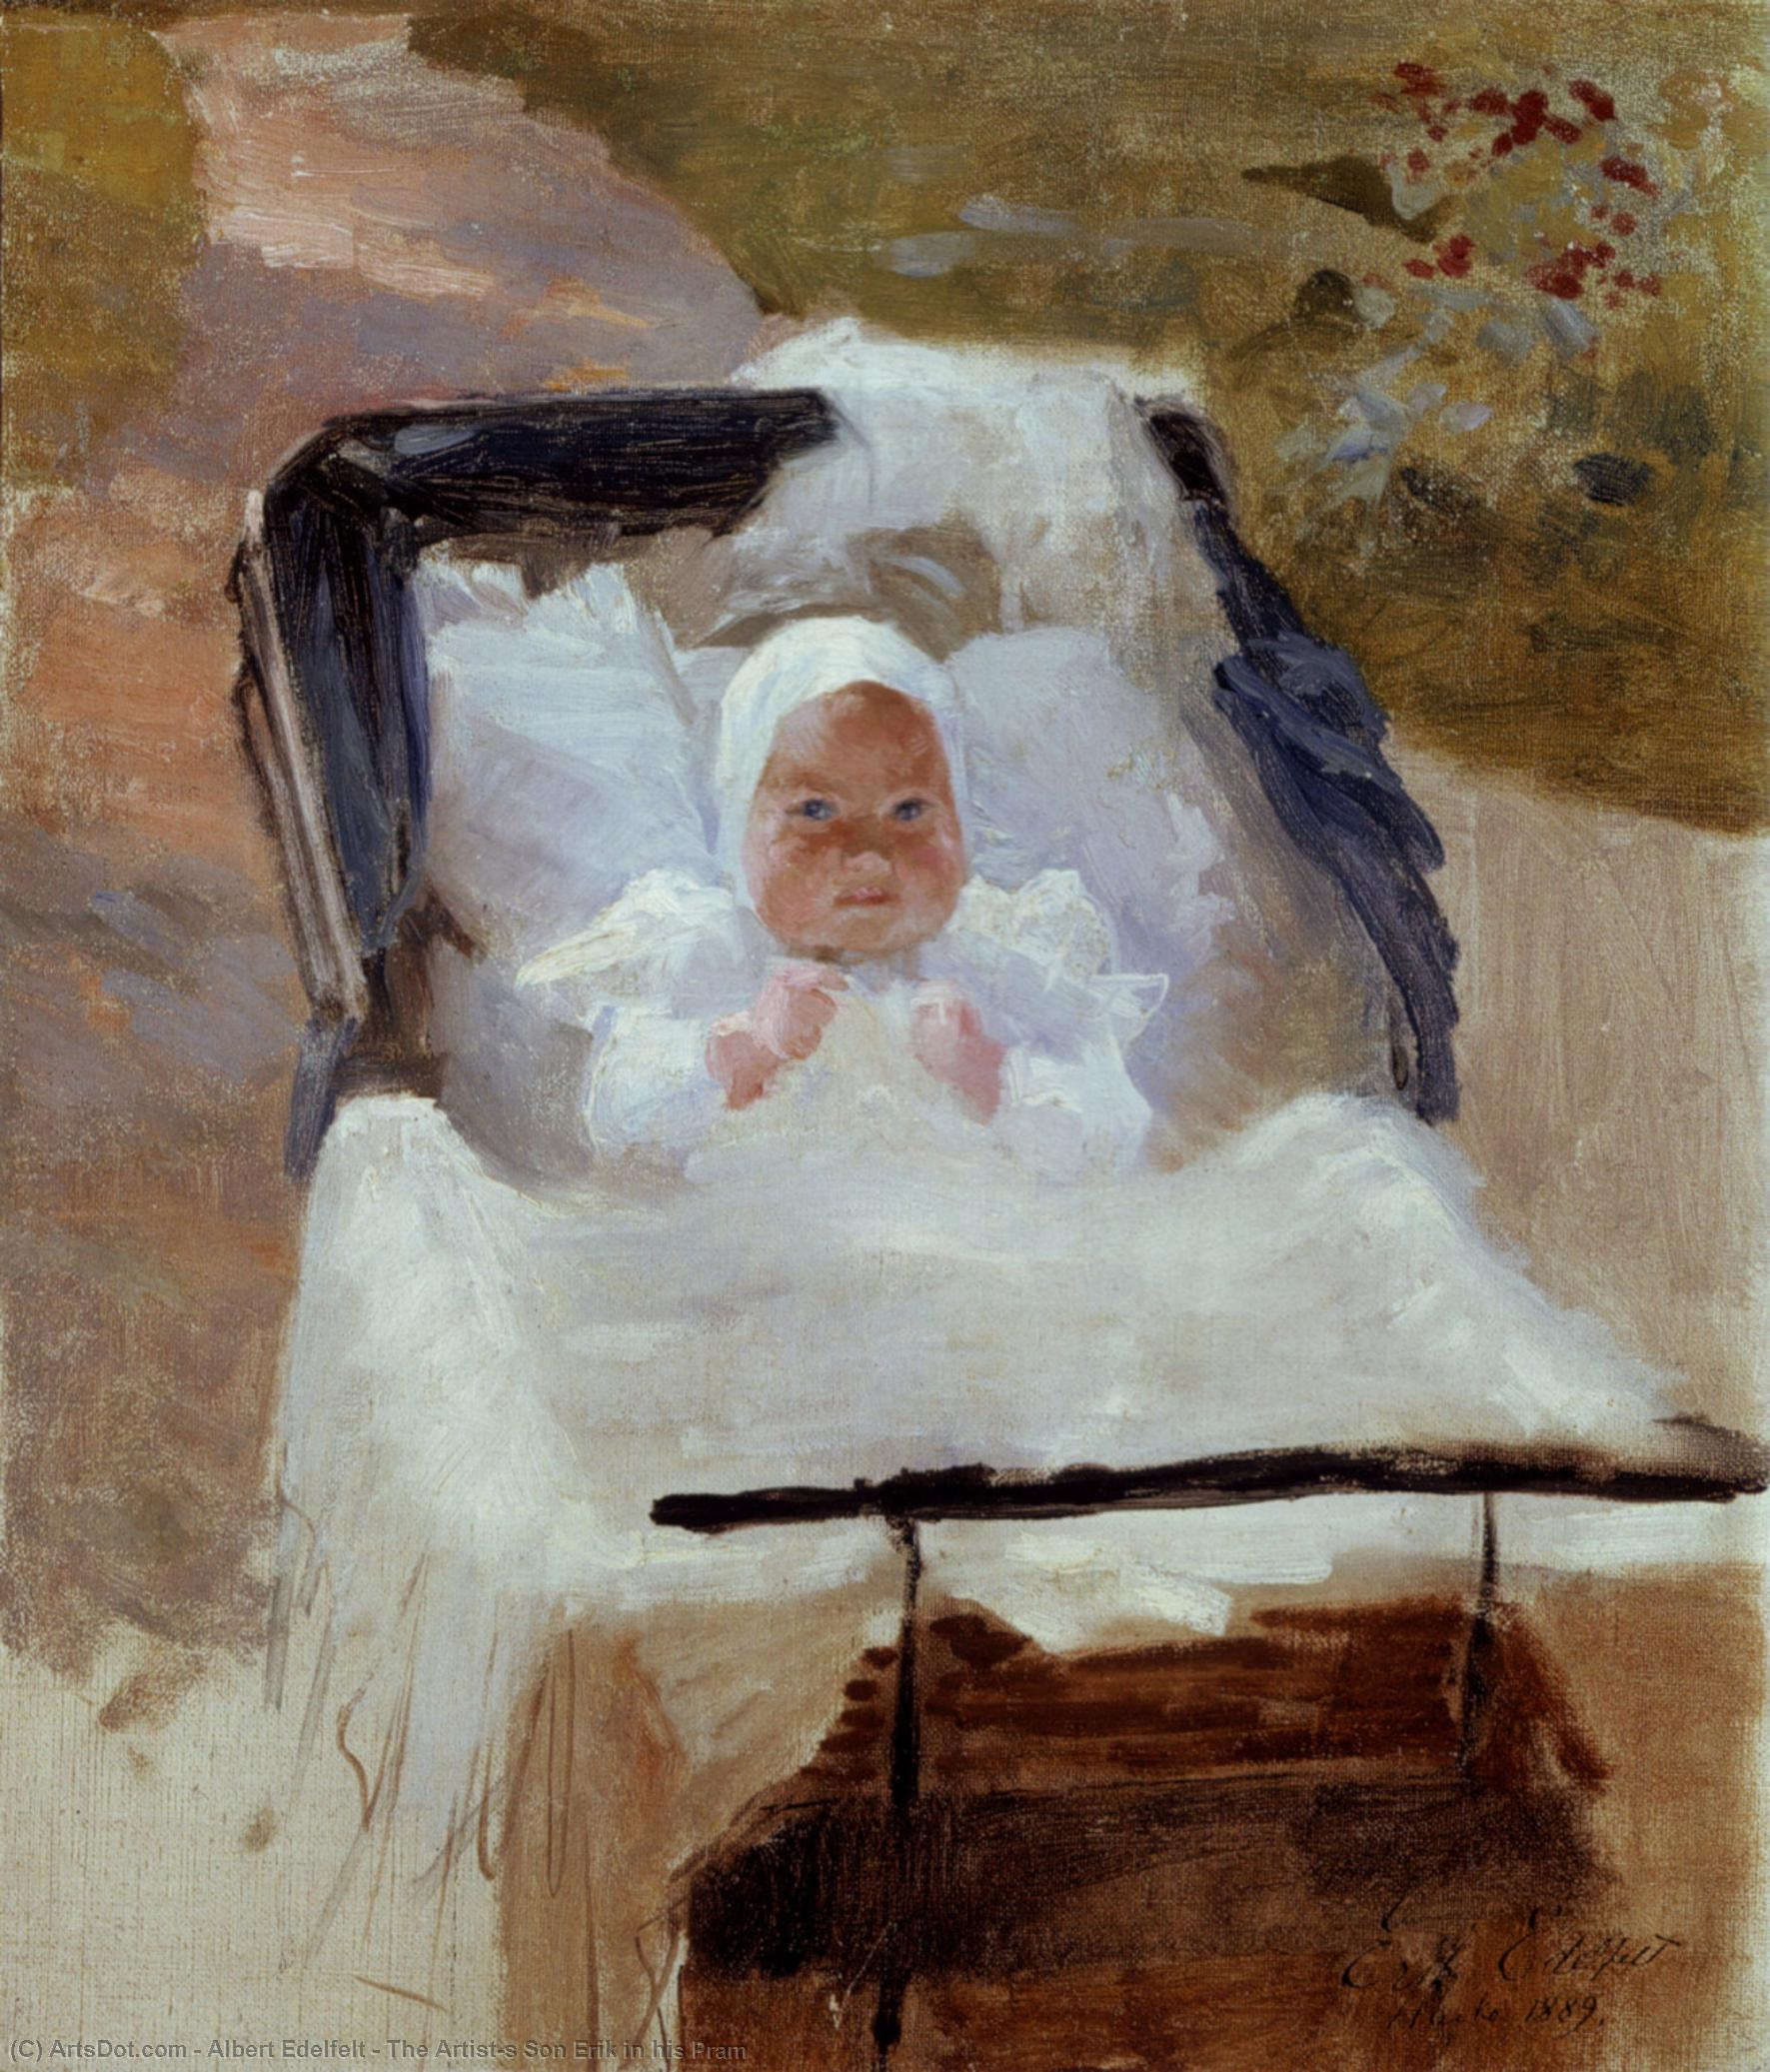 Wikioo.org - The Encyclopedia of Fine Arts - Painting, Artwork by Albert Edelfelt - The Artist's Son Erik in his Pram